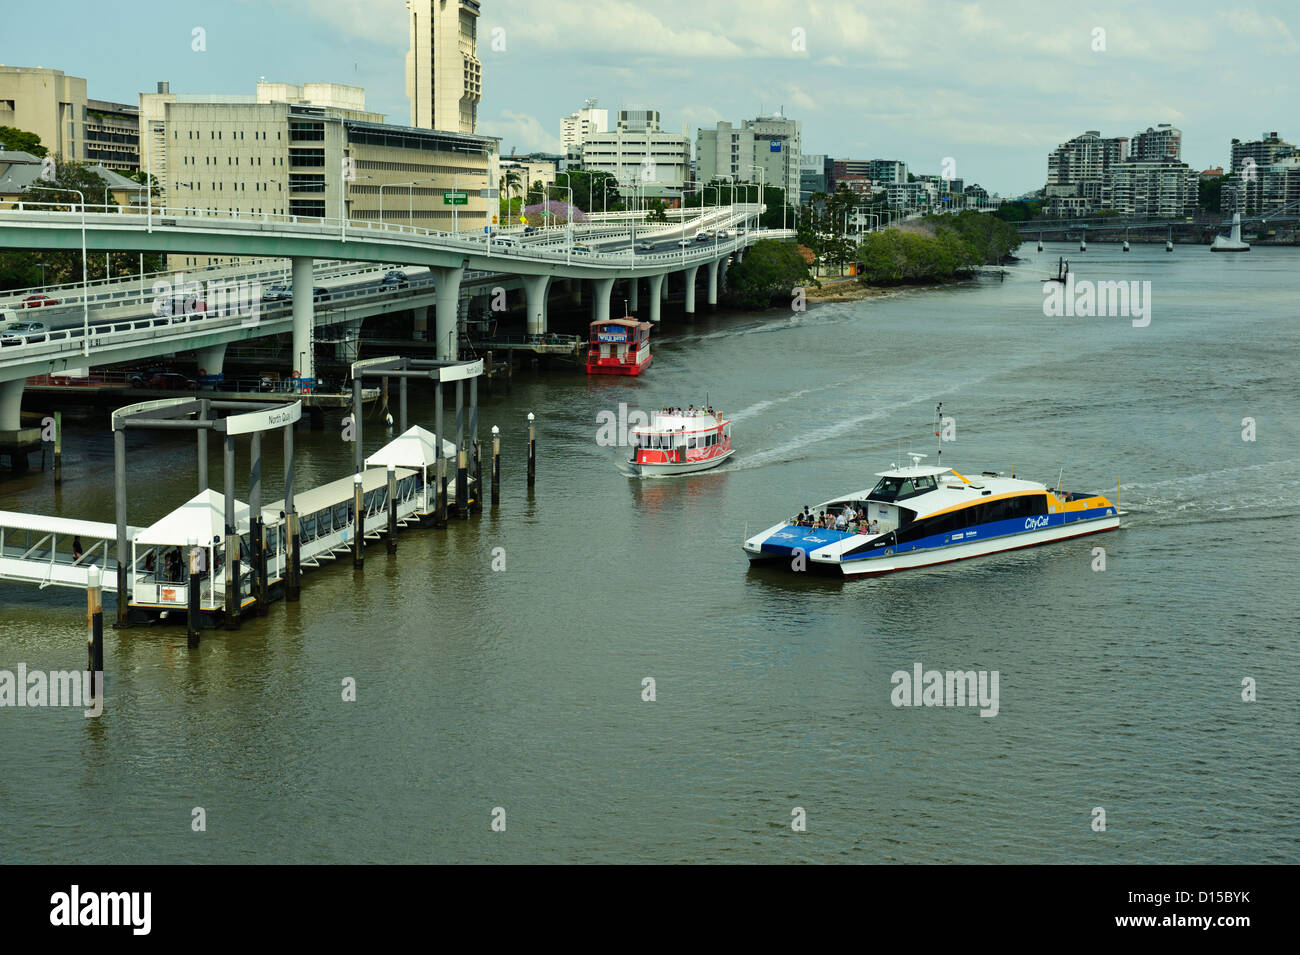 Ferries on Brisbane River in Brisbane, Queensland, Australia - Stock Image